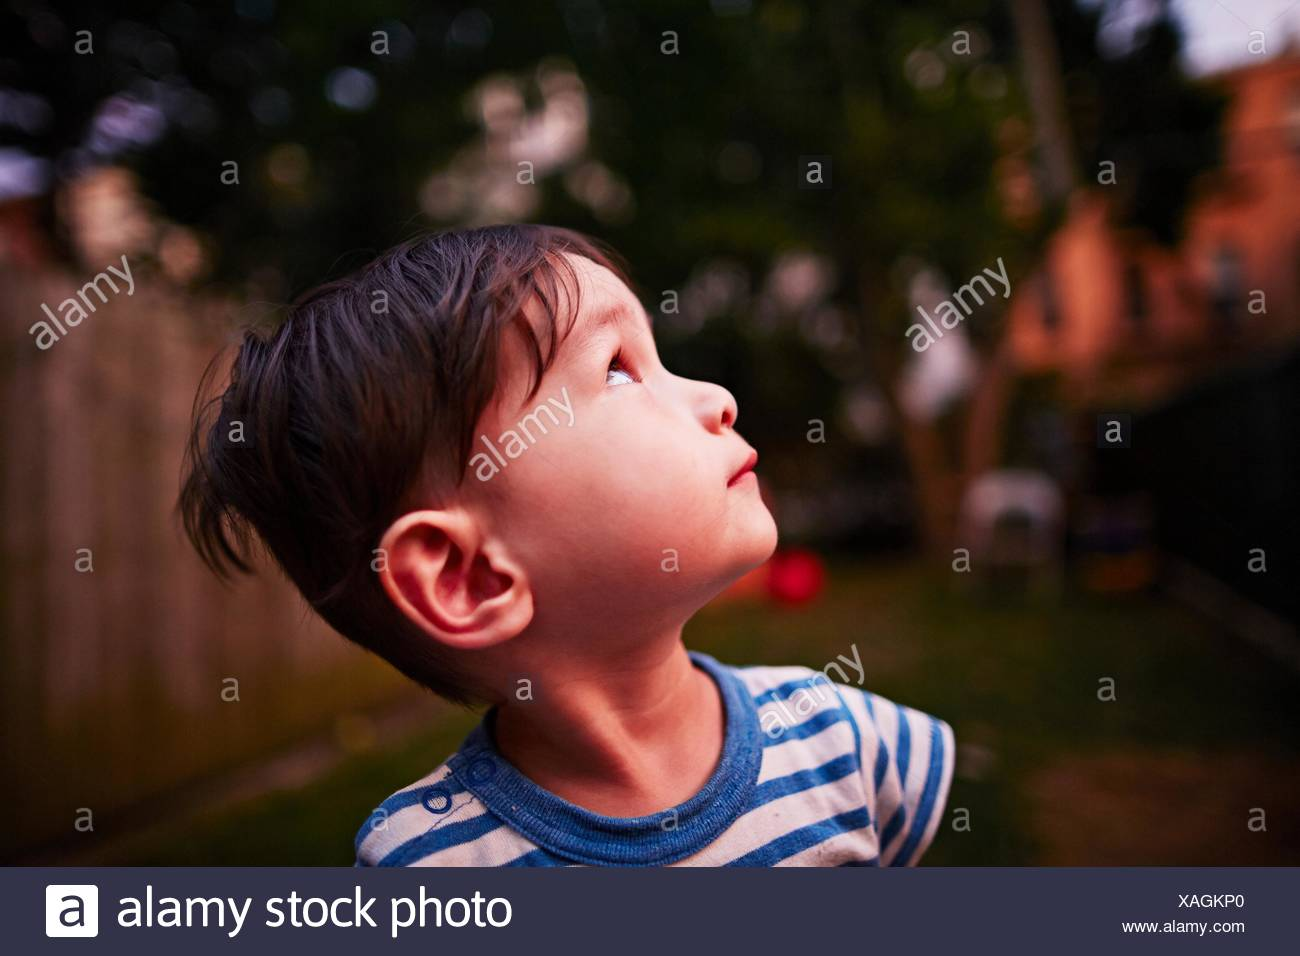 Boy looking up into sky - Stock Image